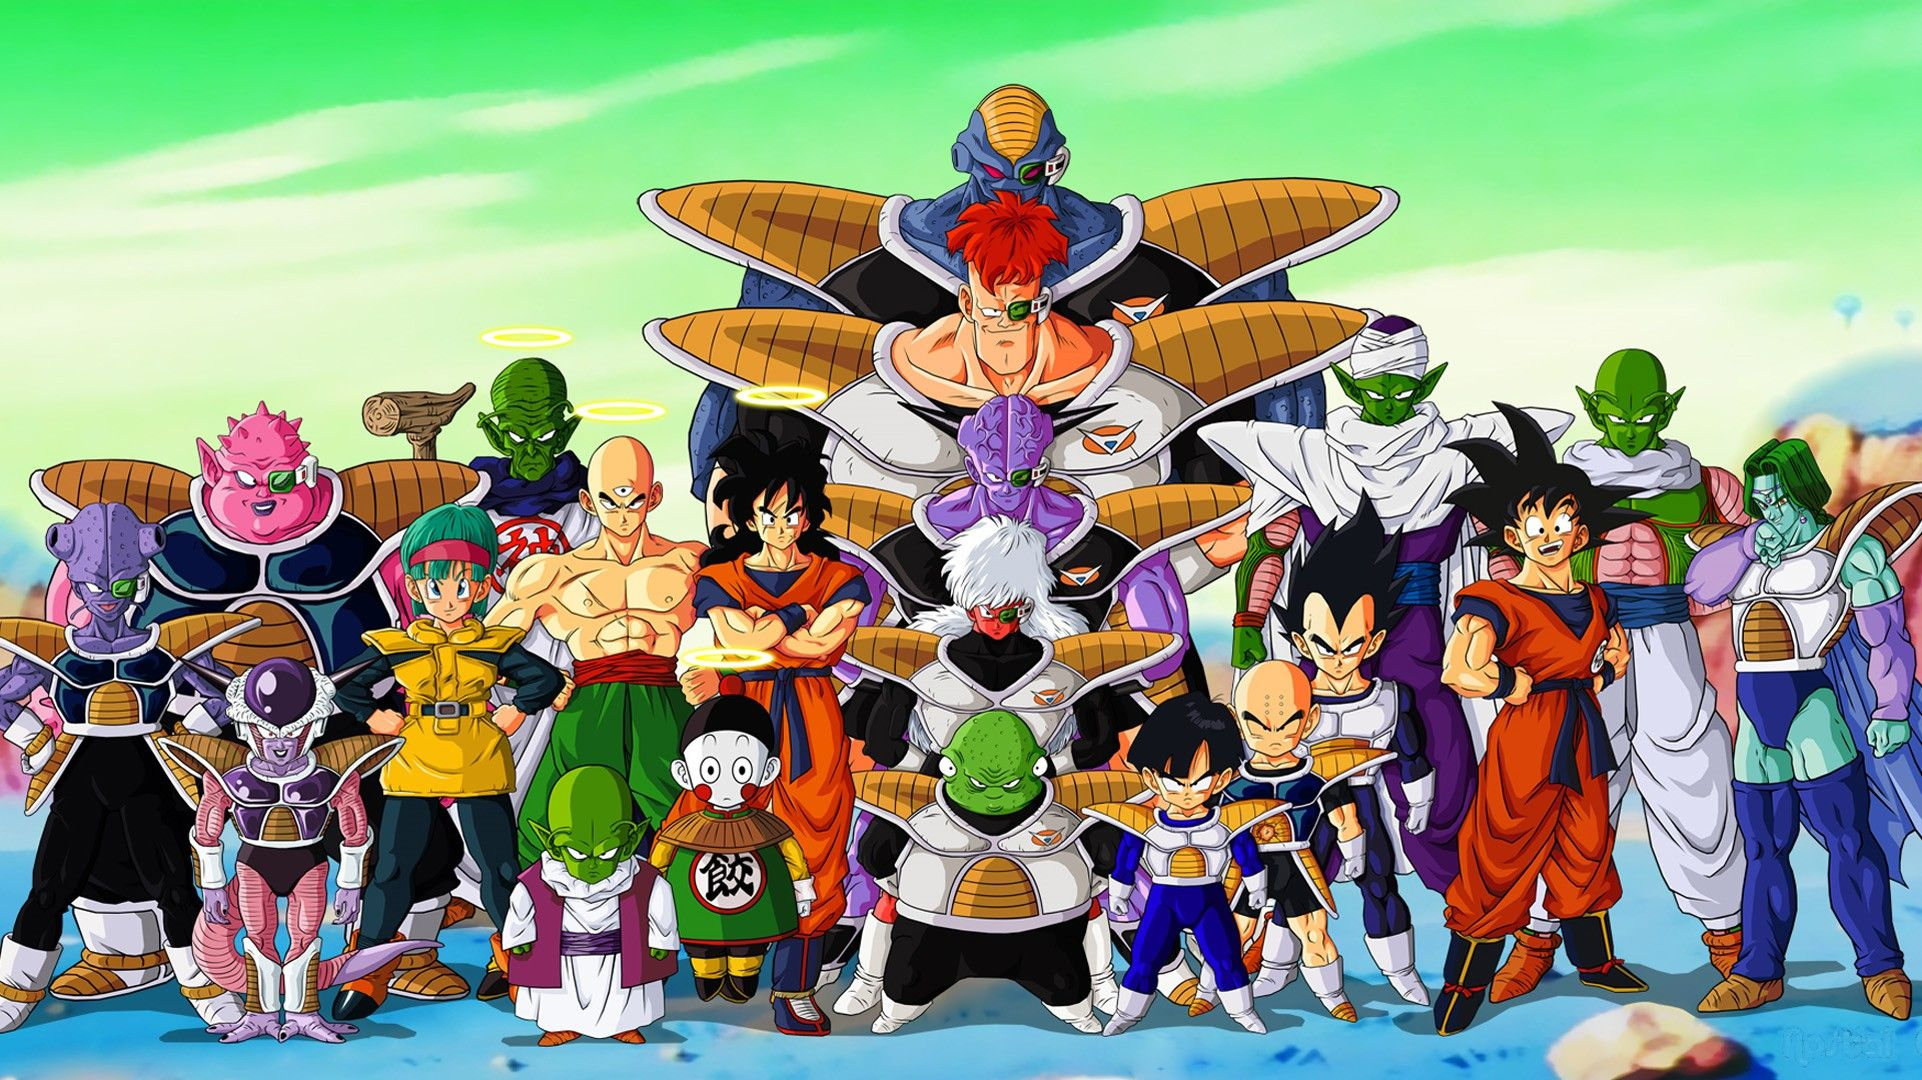 Bulma Piccolo Ginyu Force Vegeta Recoome Jeice Namek 1922x1080